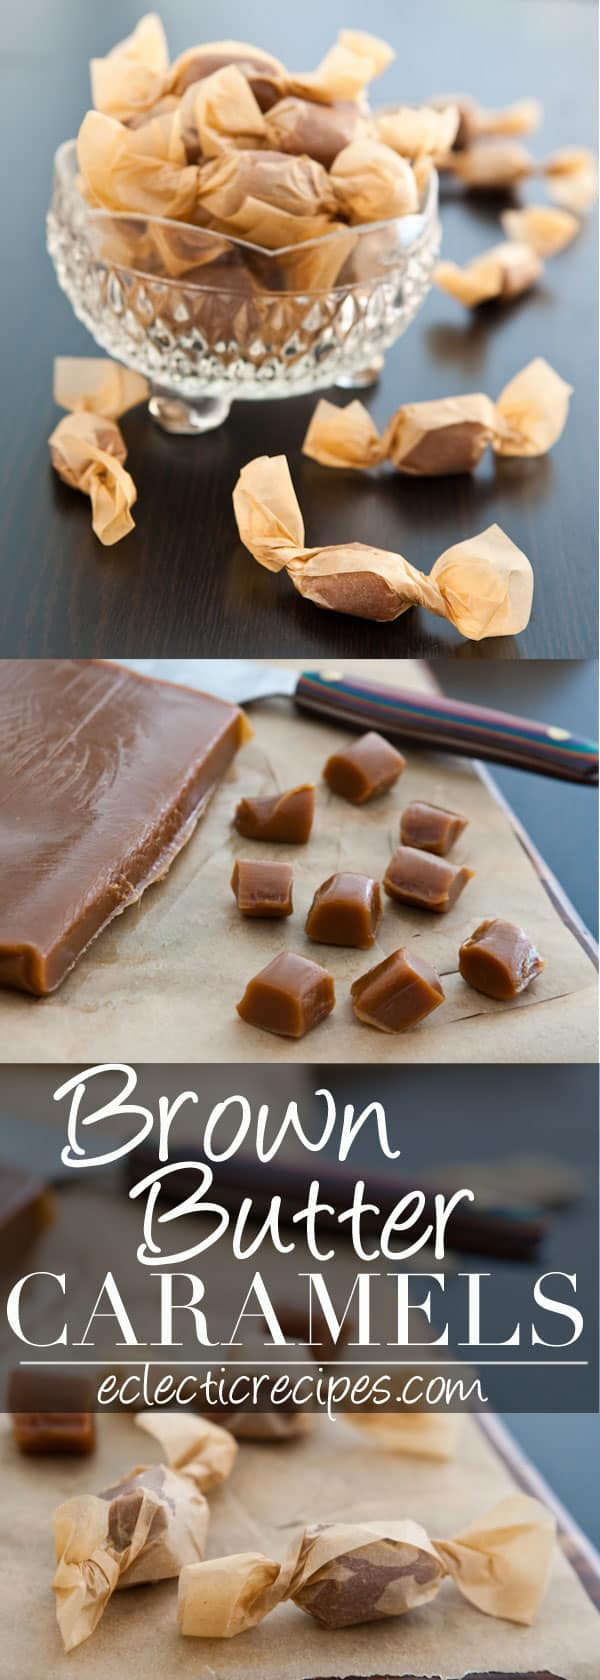 Brown Butter Caramels #holiday #christmas #candy #caramels #gift